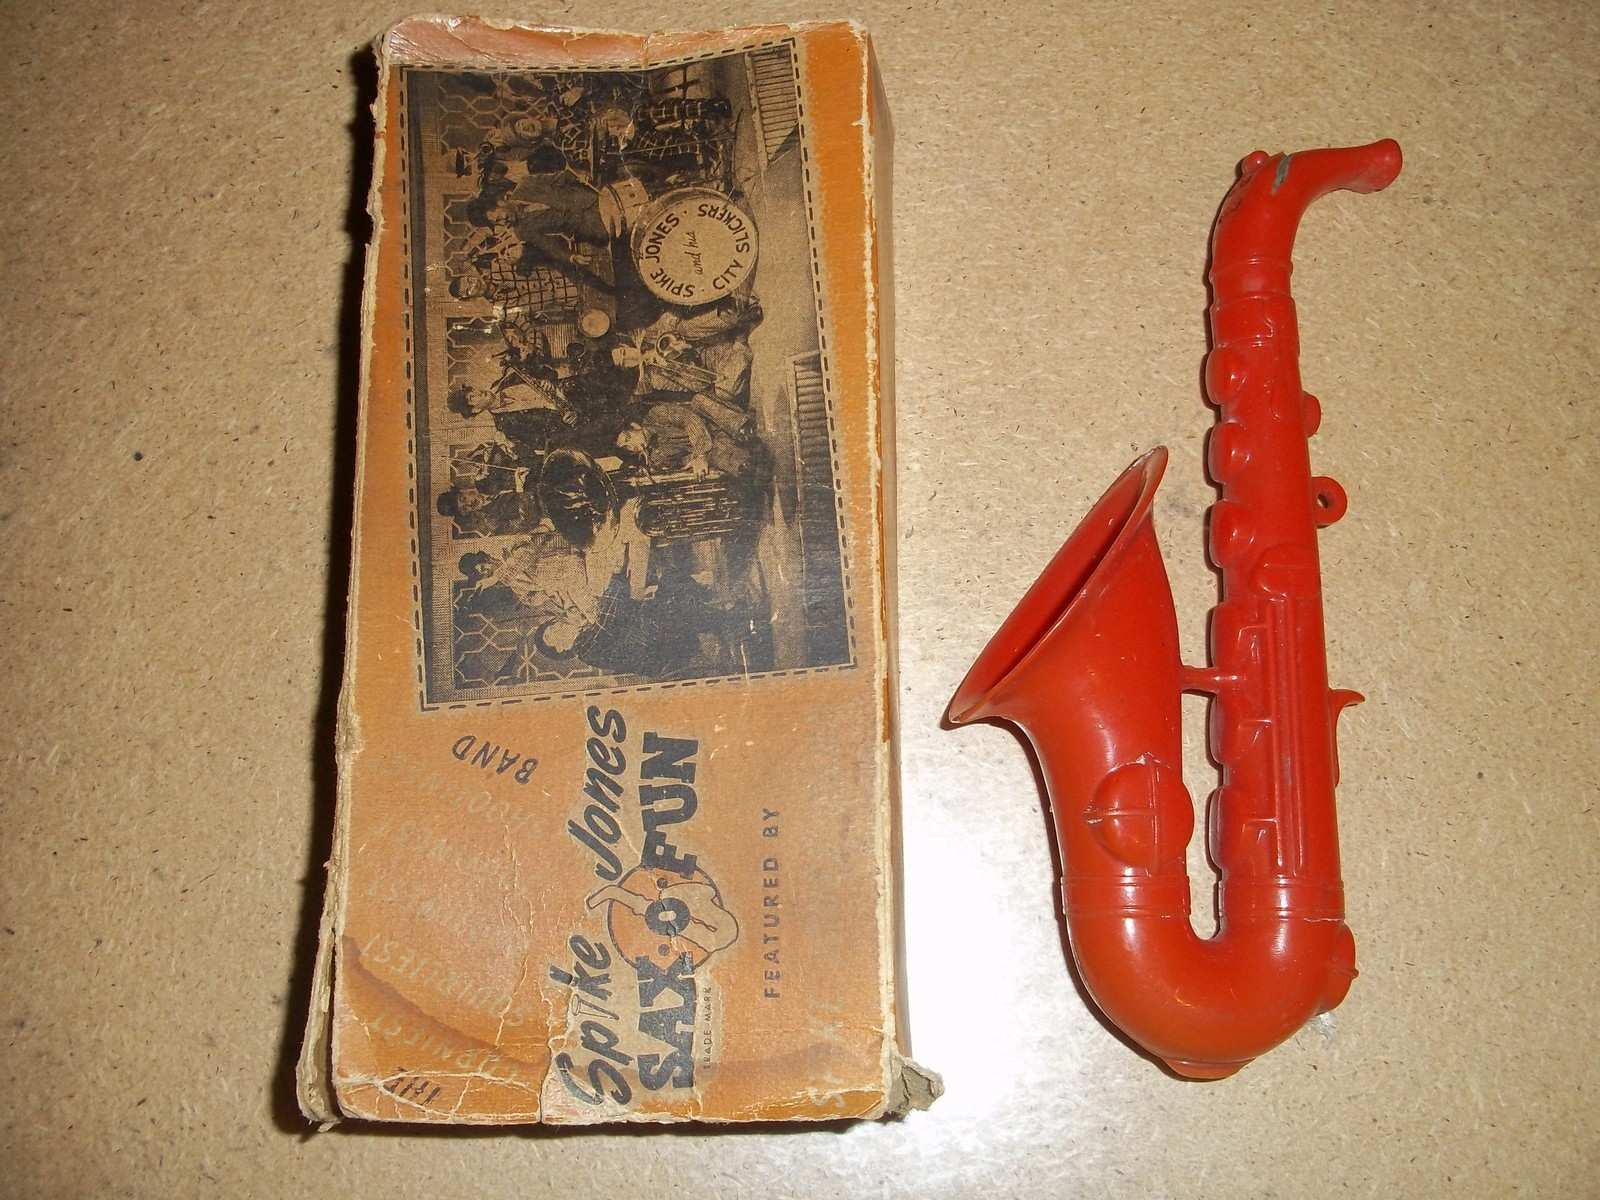 Sax-o-Fun, Spike Jones toy sax, vintage saxophone-shaped toy